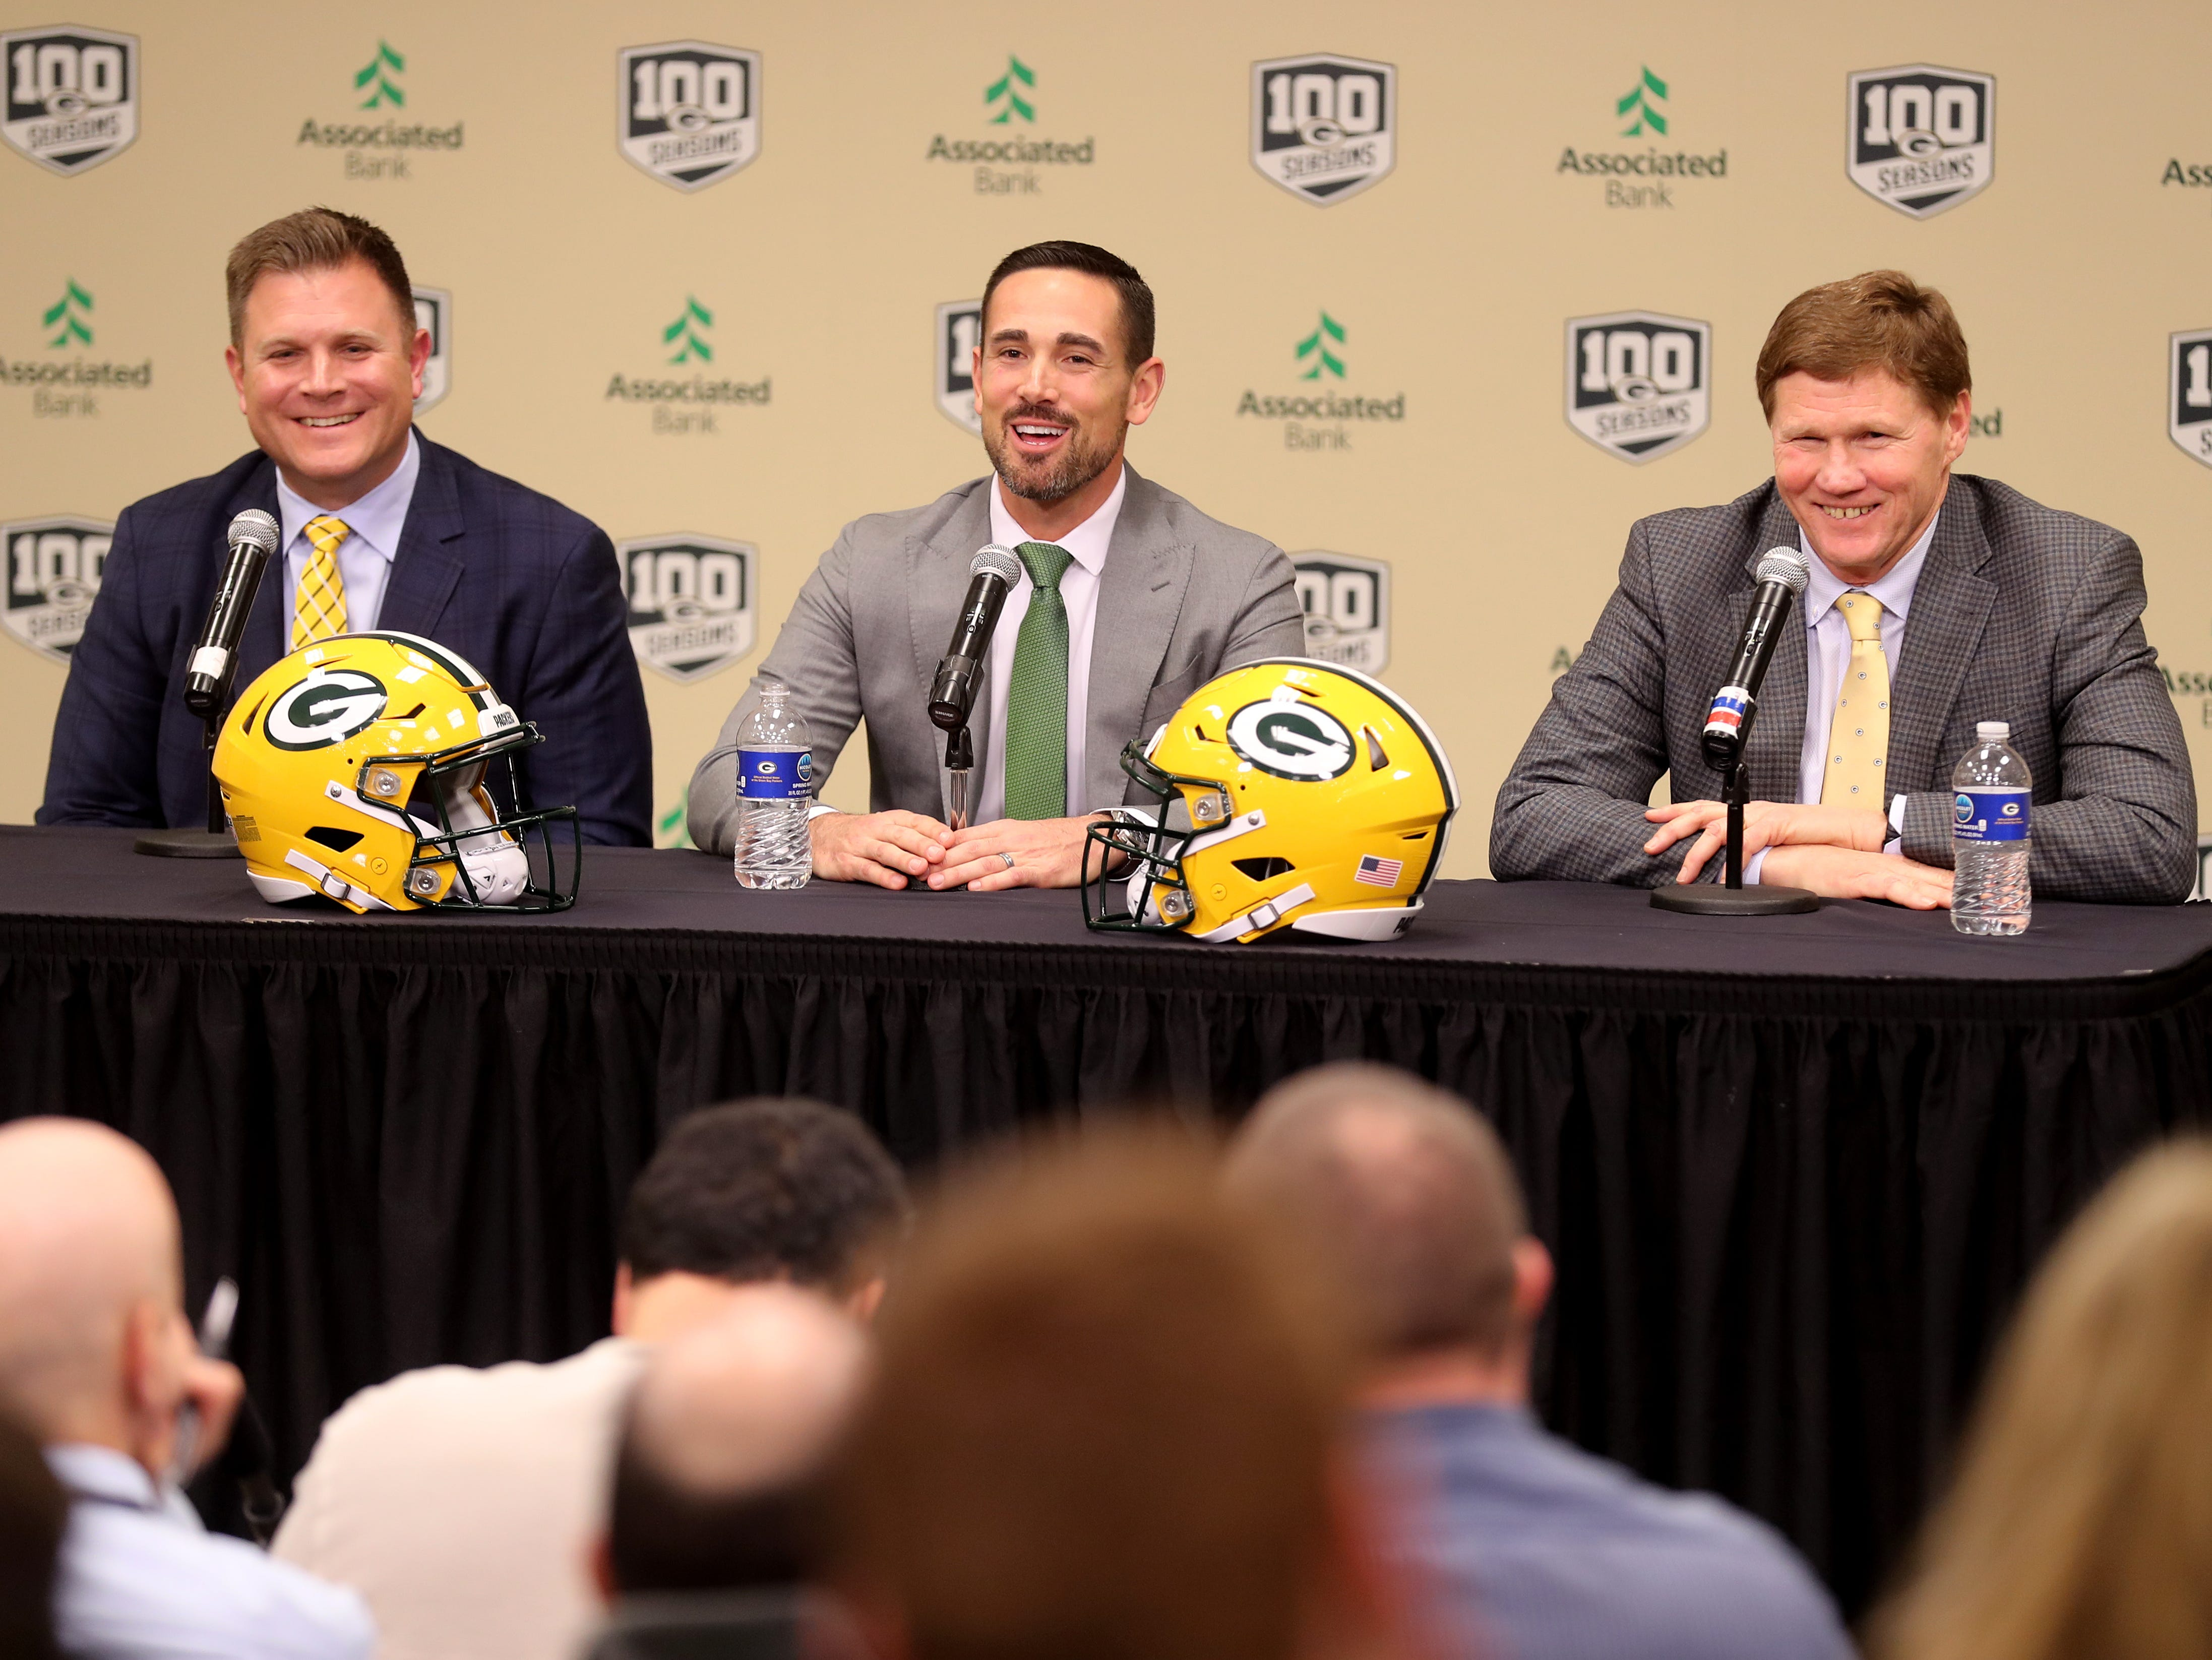 New Green Bay Packers head coach Matt LaFleur, center,  is introduced during a press conference in the Lambeau Field media auditorium with general manager Brian Gutekunst, left, and team president Mark Murphy Wednesday, January 9, 2019 in Green Bay, Wis.